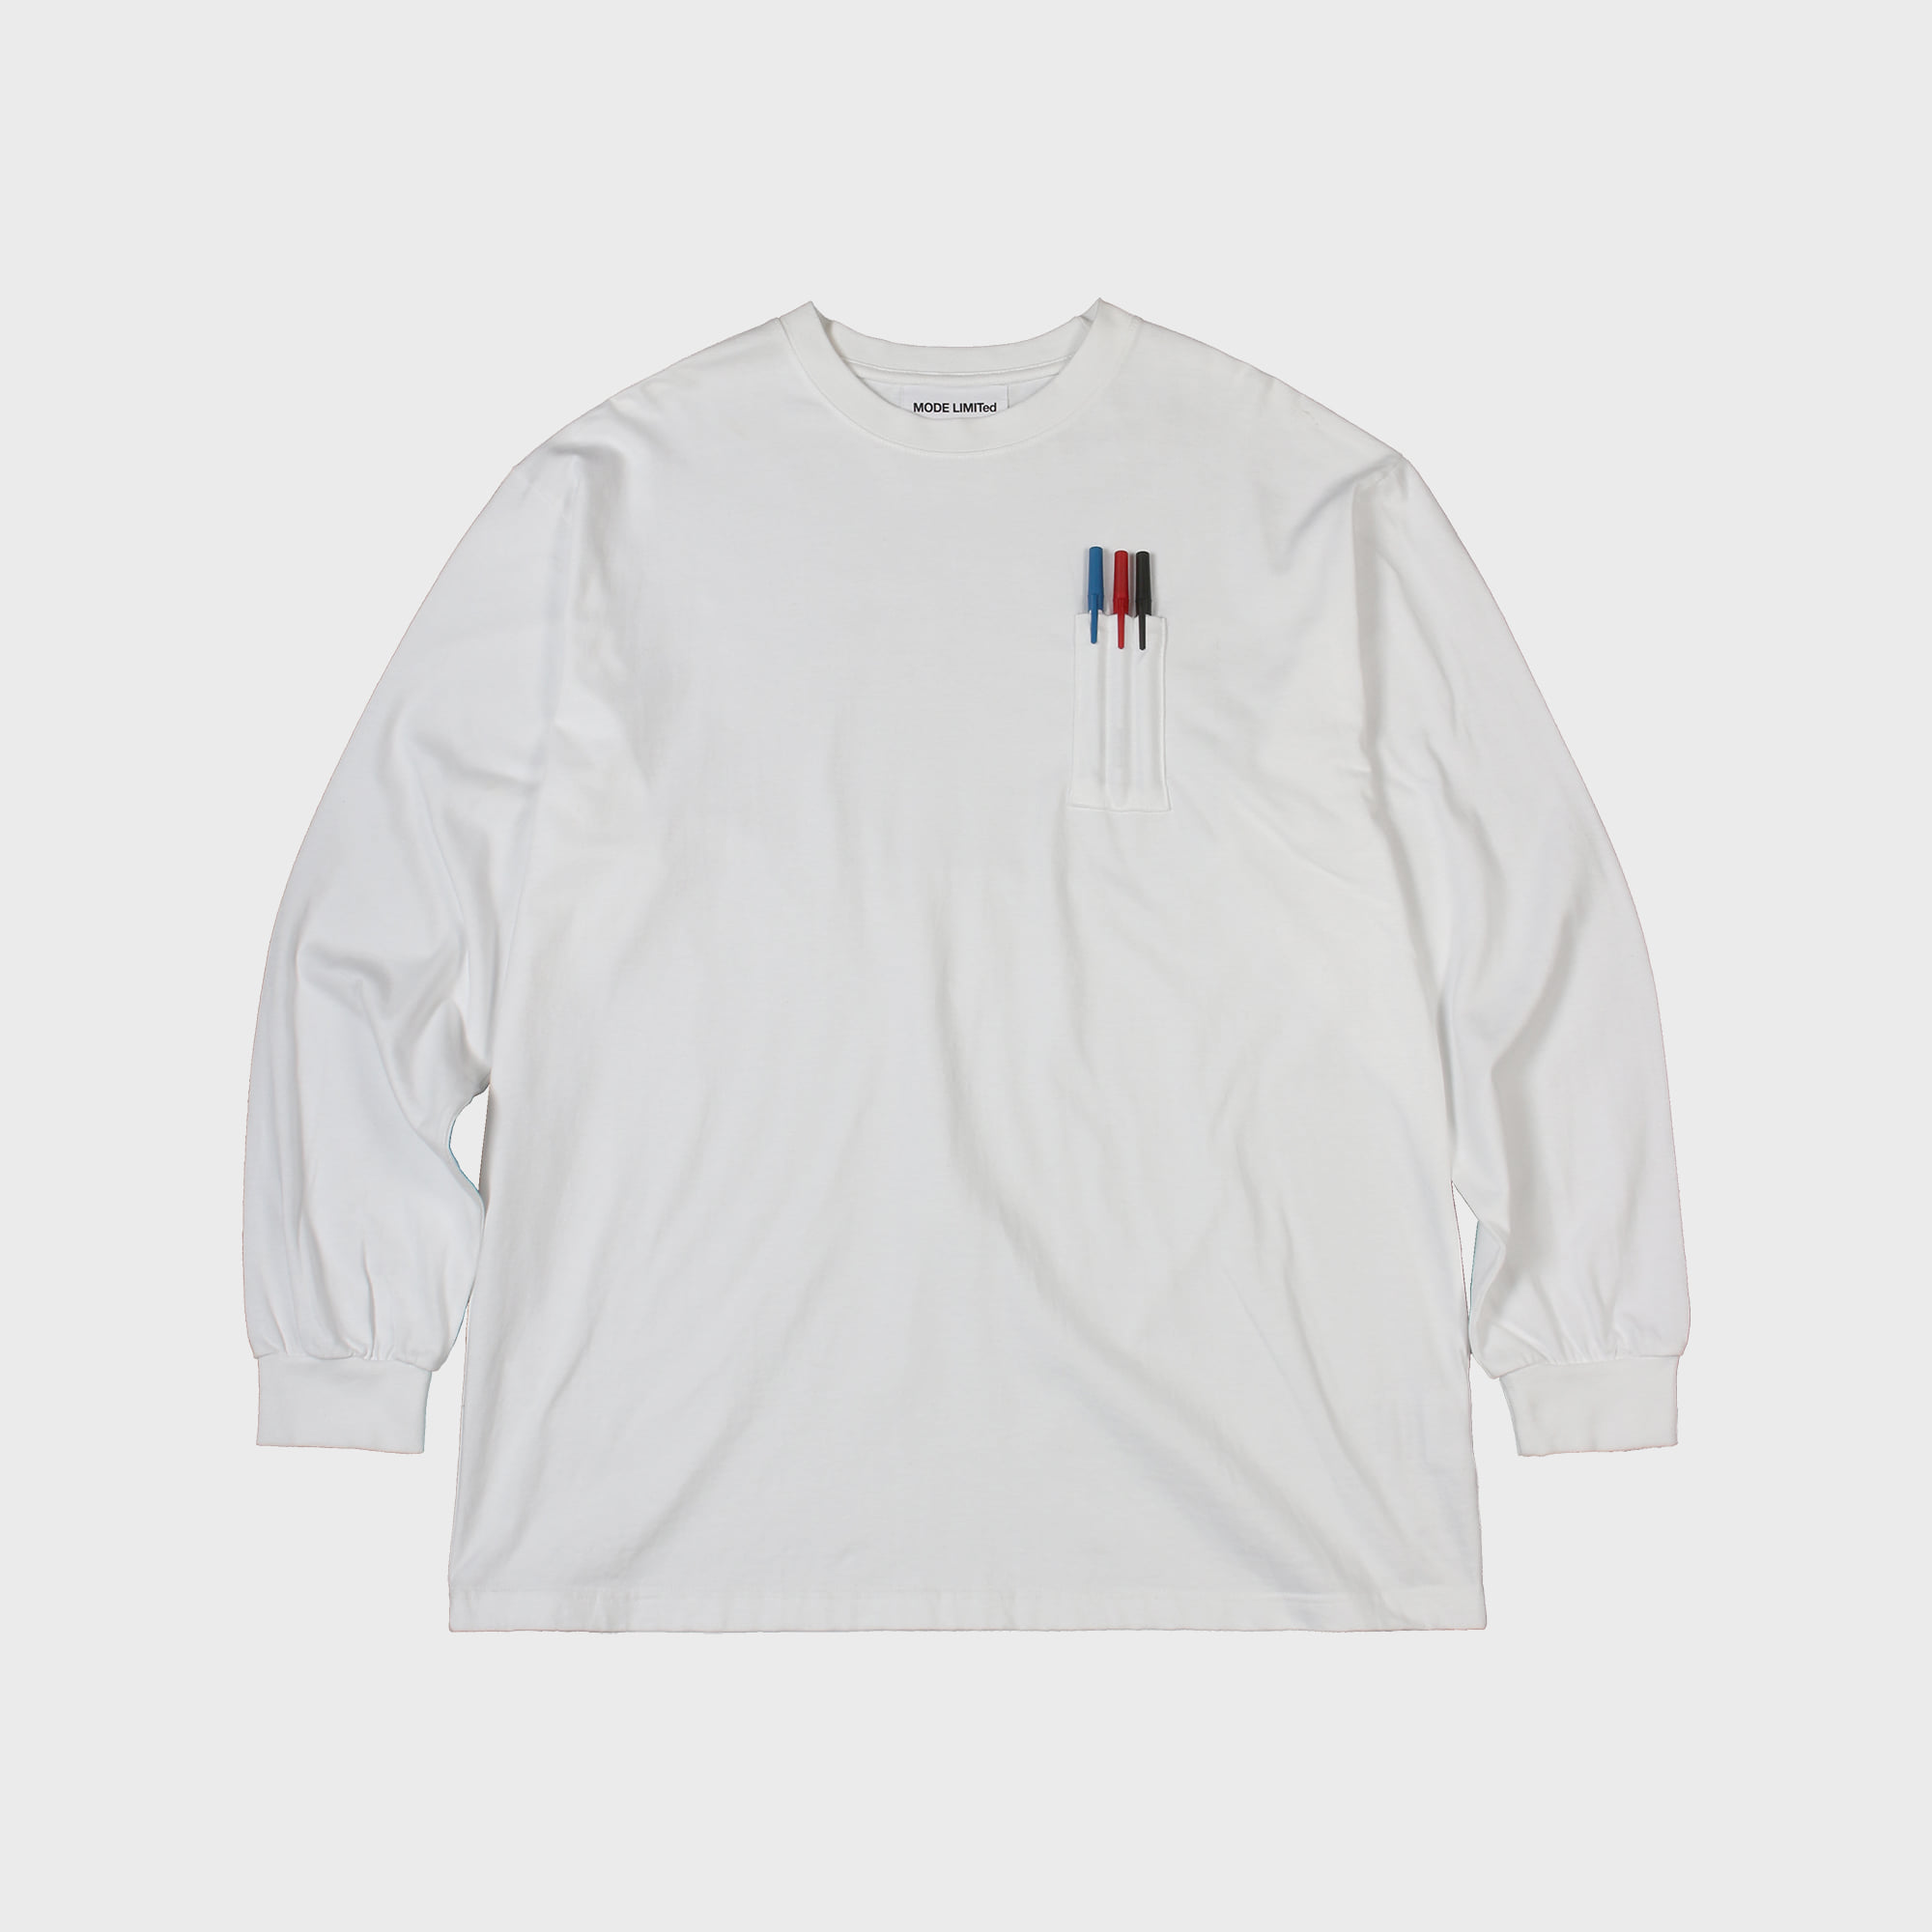 3pocket T White